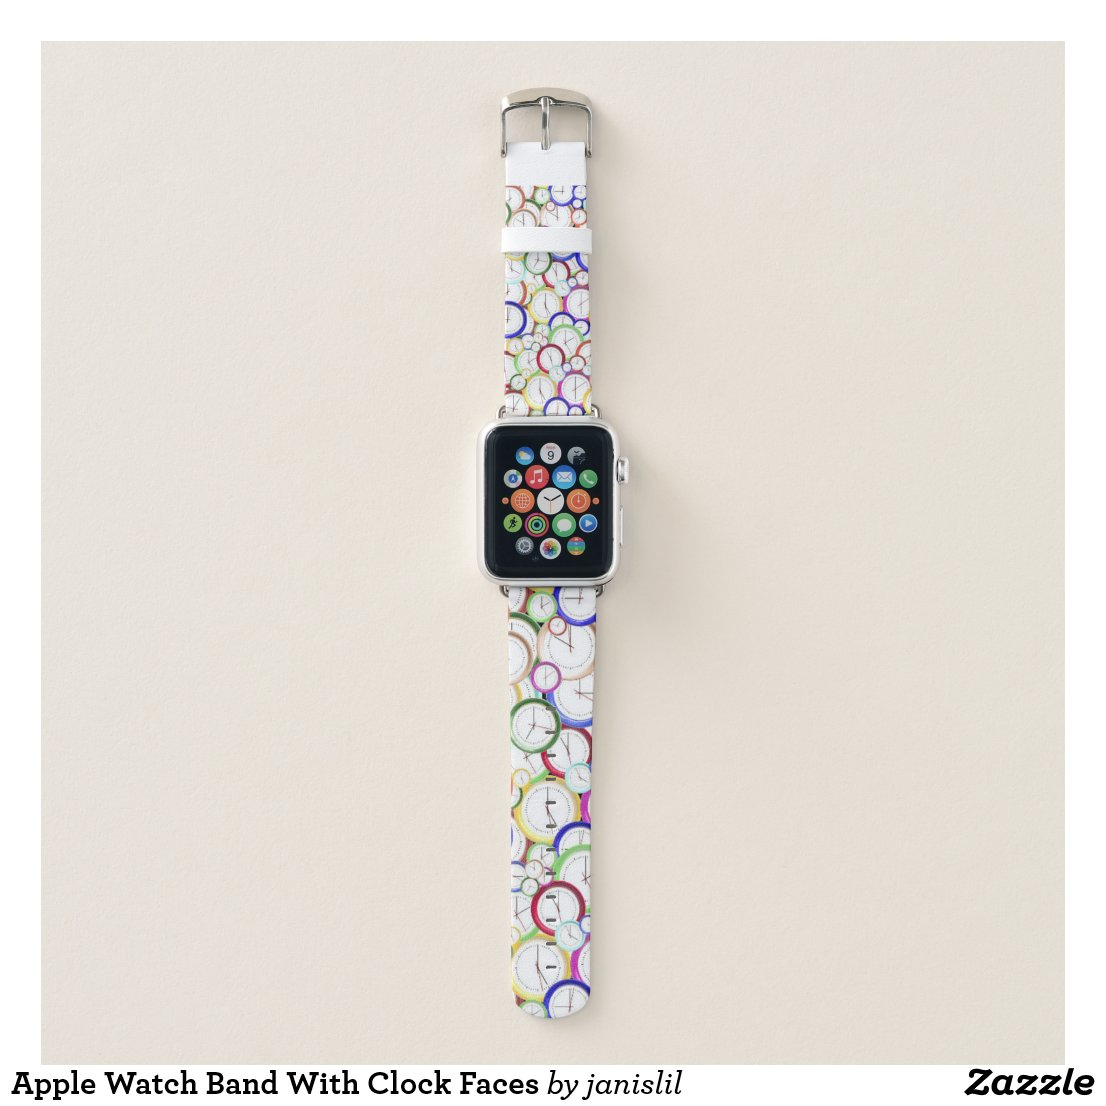 Apple Watch Band With Clock Faces